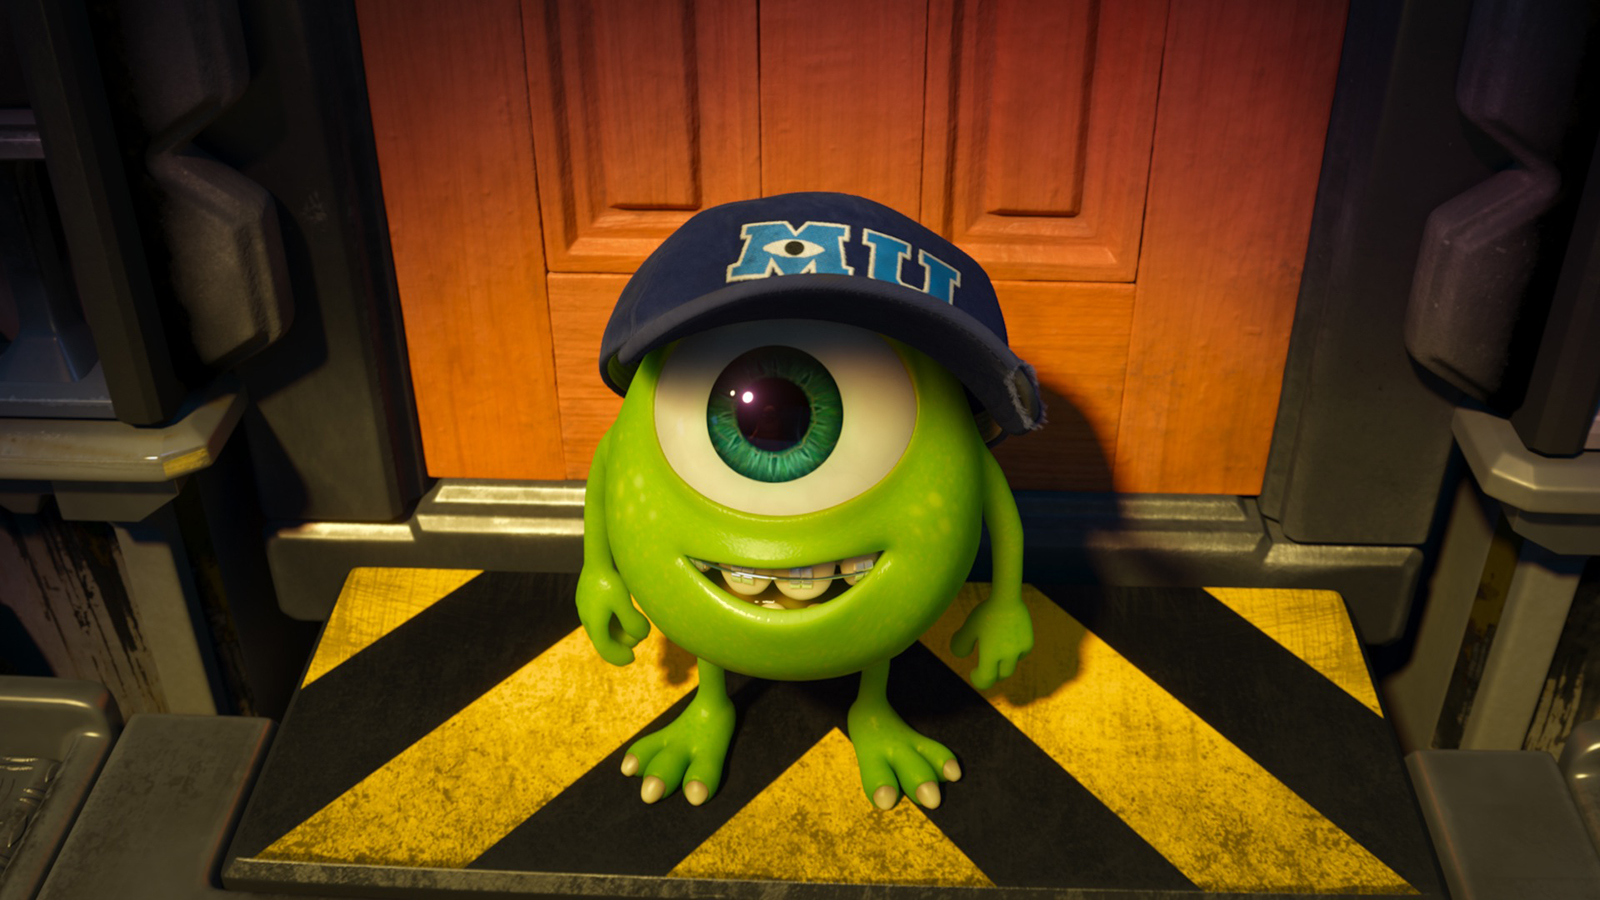 Wallpaper iphone monster university - Movie Monsters University Mike Wazowski Wallpaper